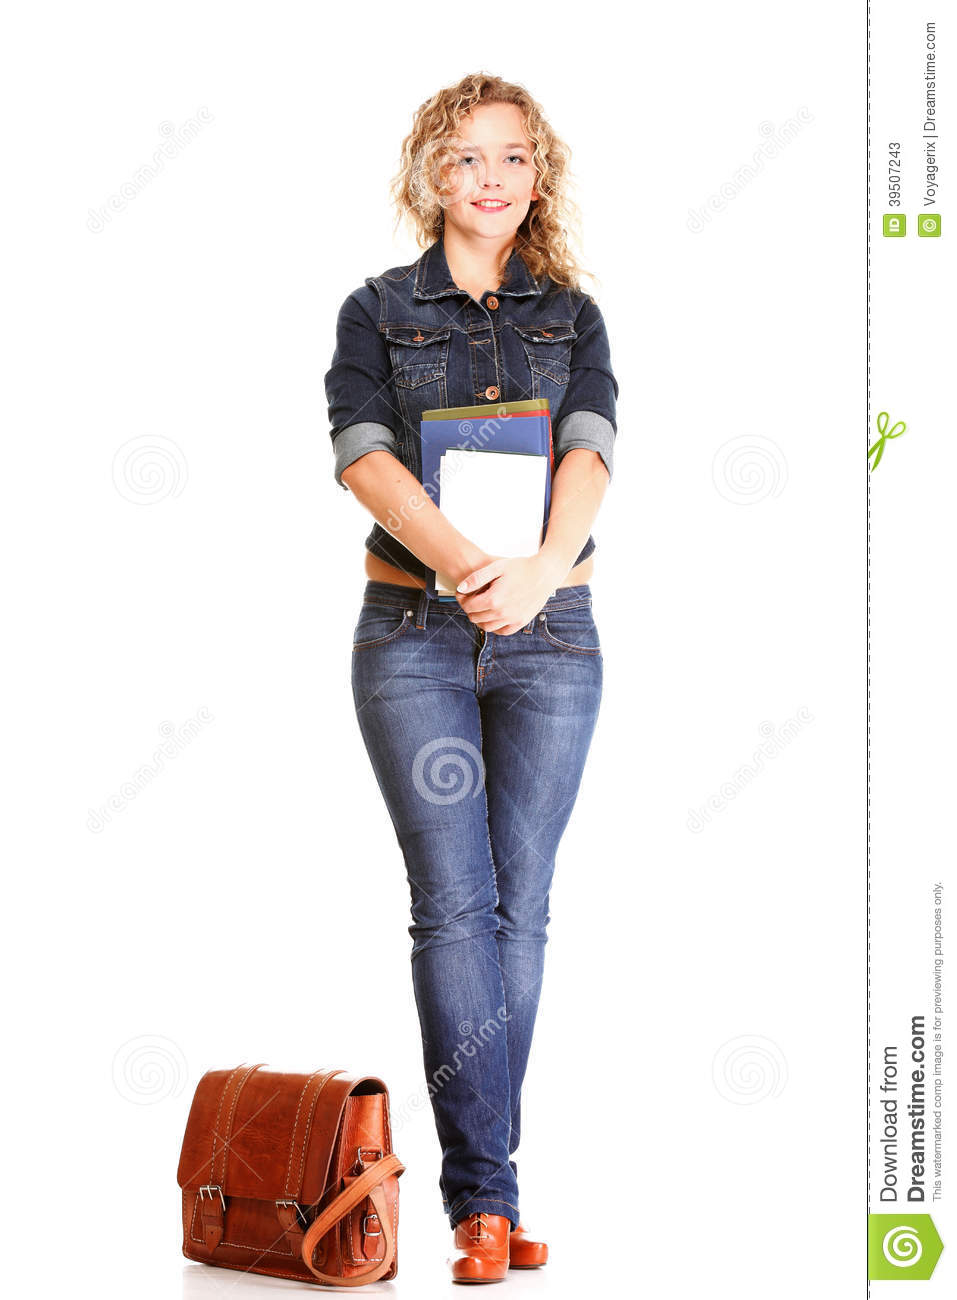 Beautiful young woman blonde standing full body in jeans isolate